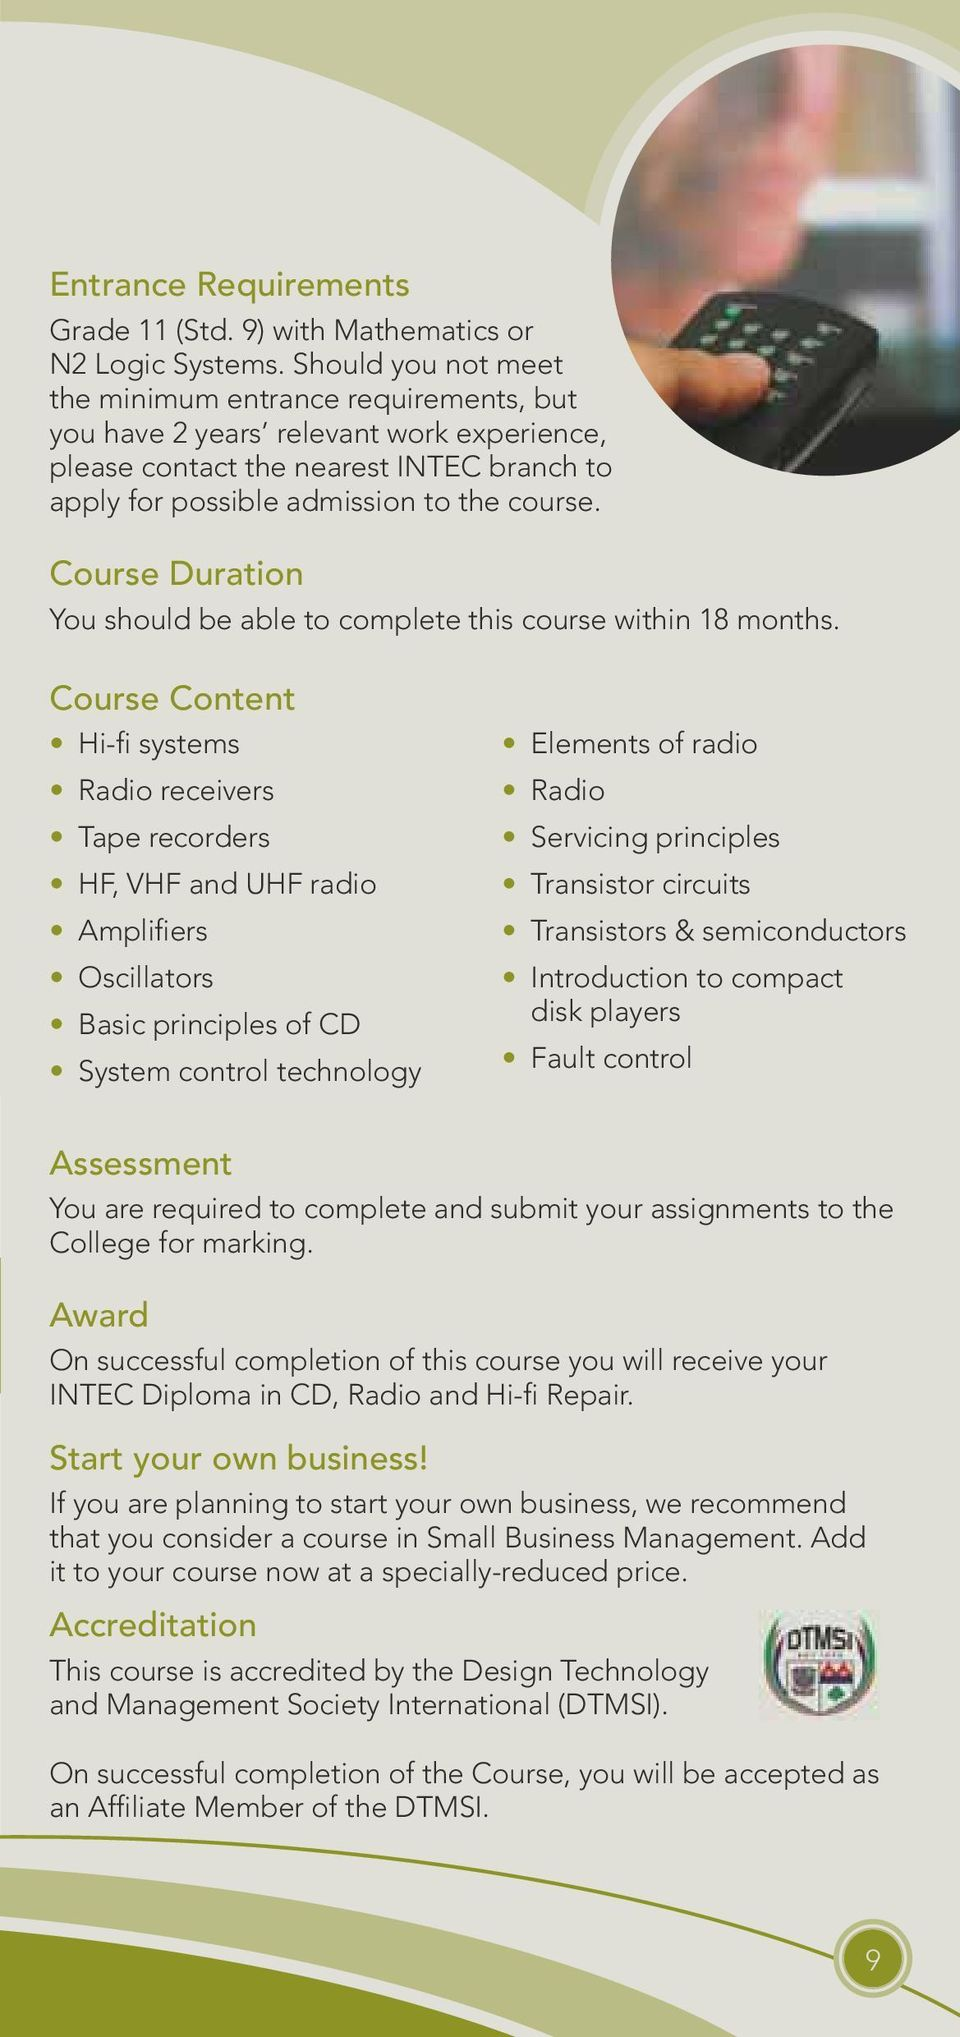 Course Duration You should be able to complete this course within 18 months.